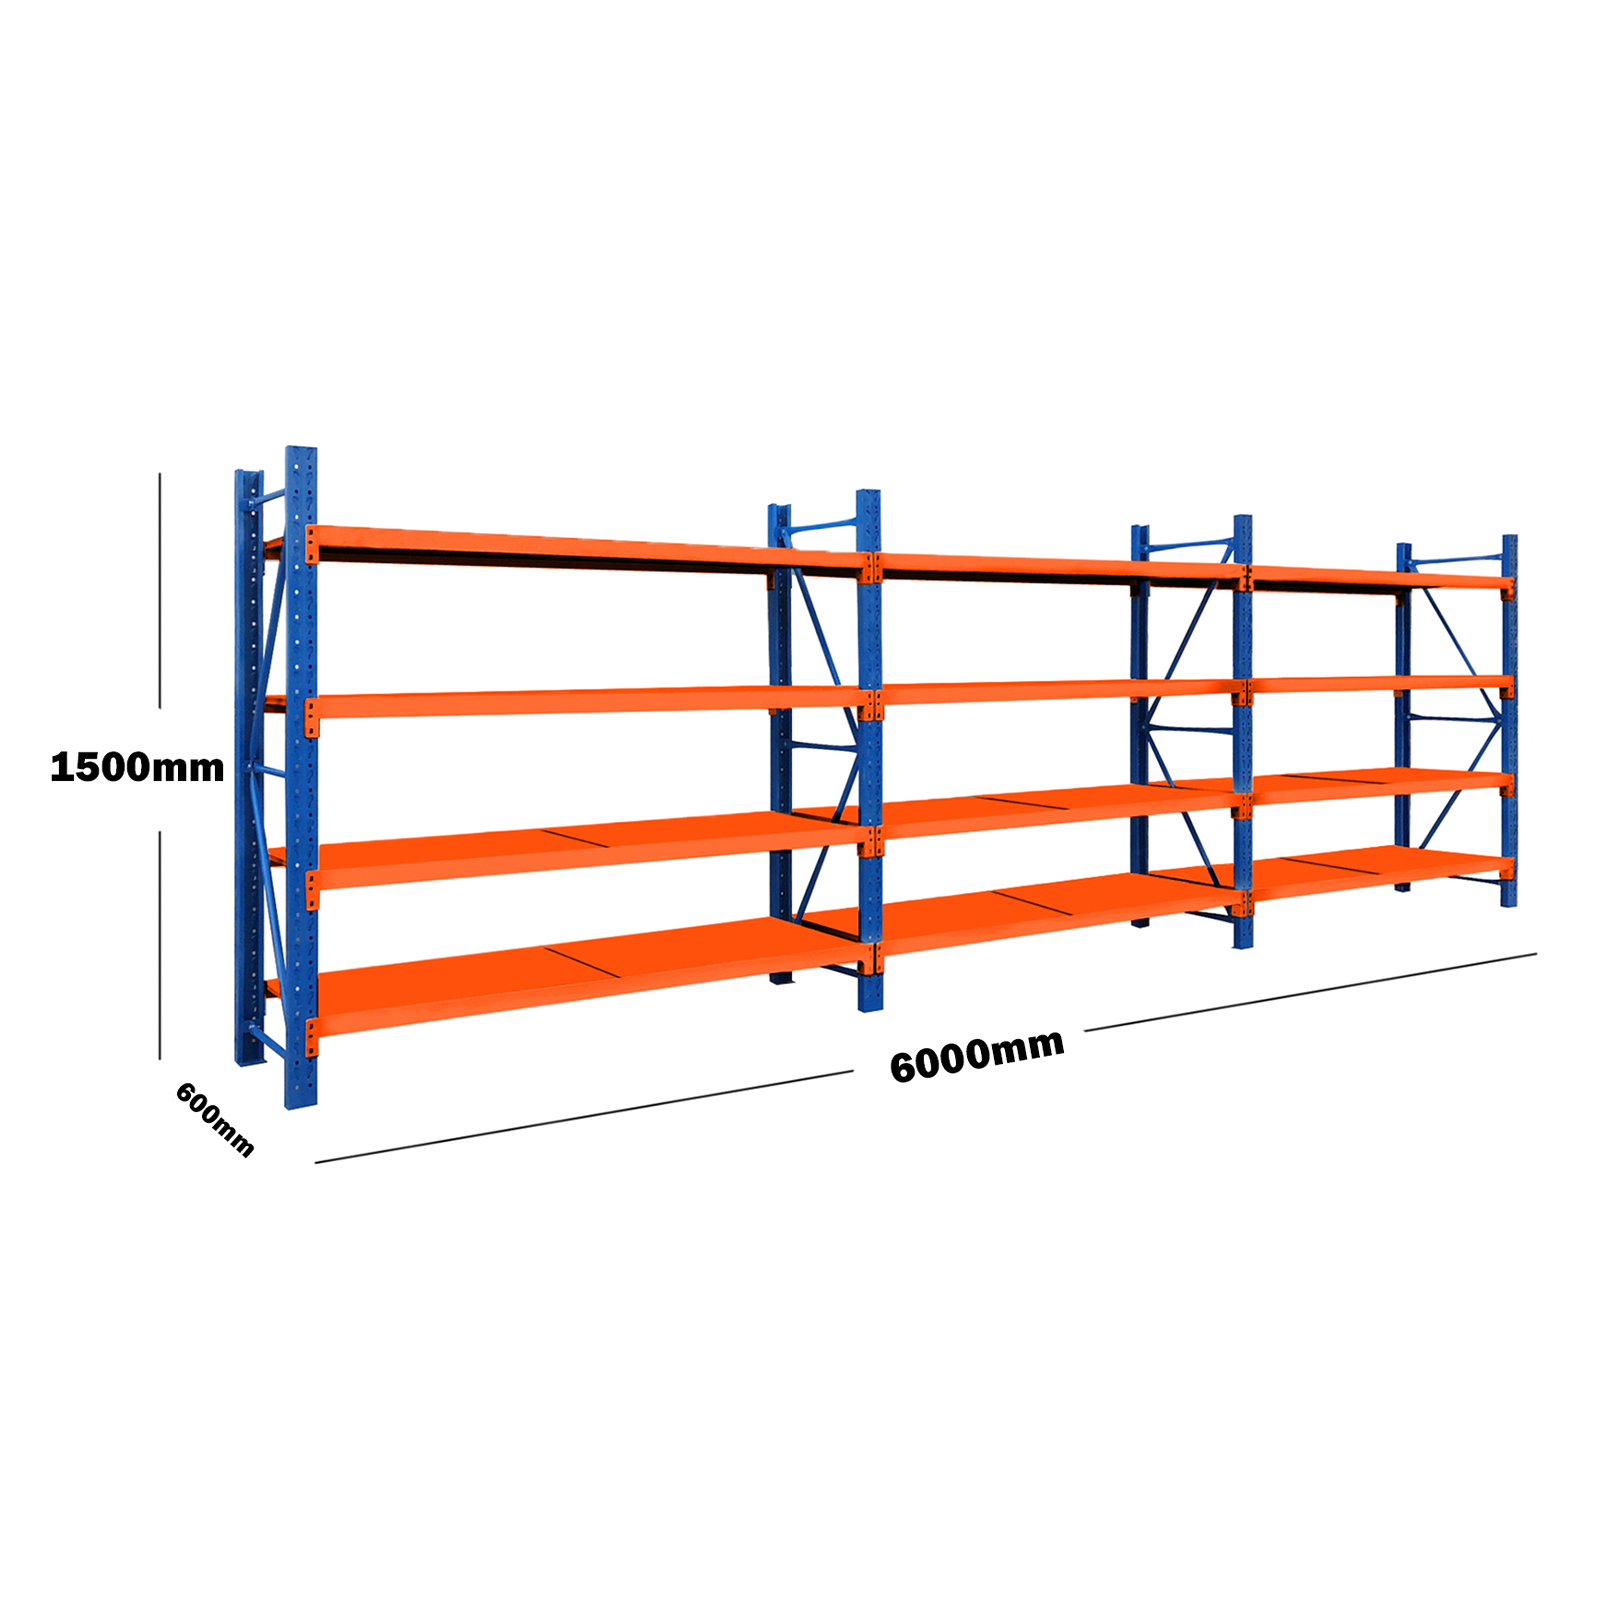 6M(L) x 1.5M(H) x 0.6M(D) Shelves Racking Metal Steel 6015BO